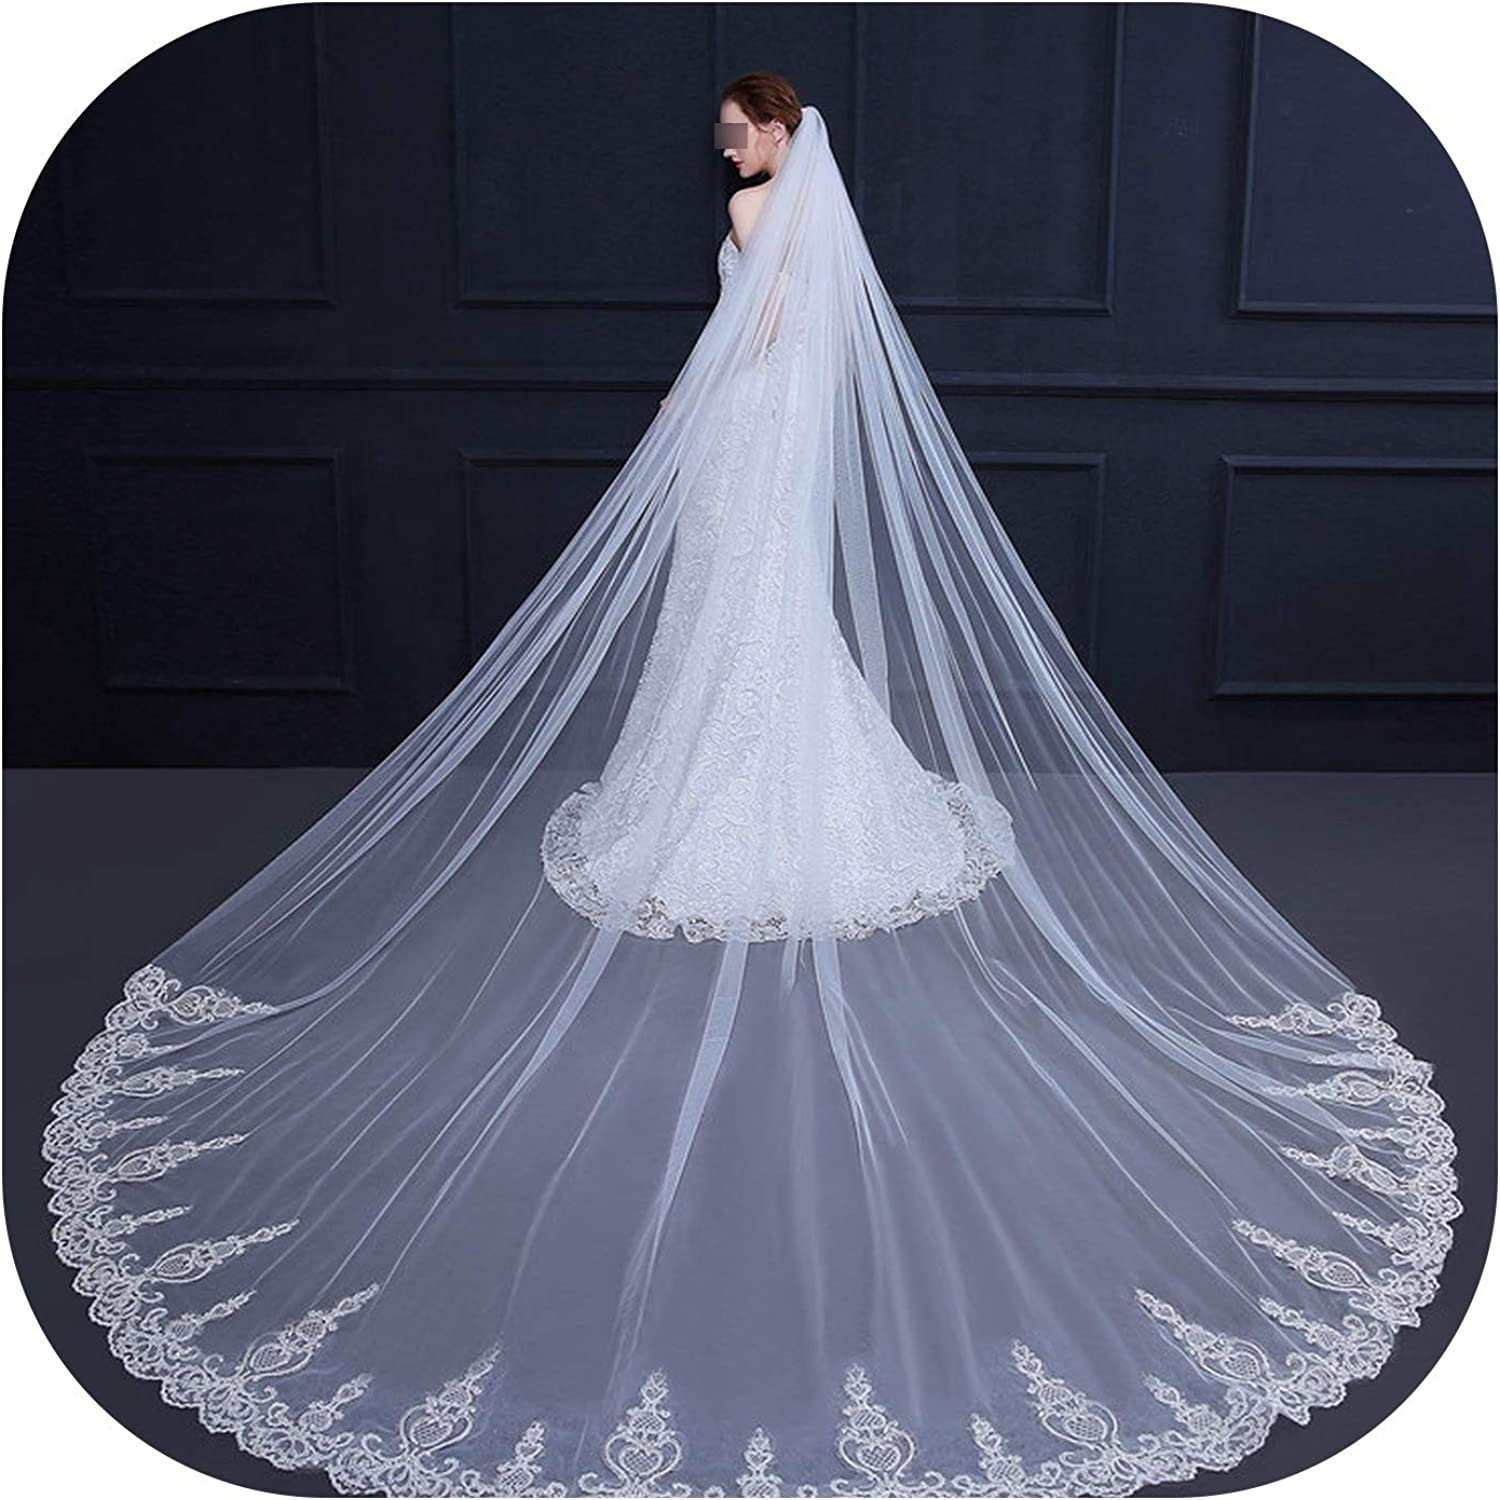 3.5 Meter White Ivory Cathedral Wedding Veils Long Lace Edge Bridal Veil with Comb Wedding Accessories Bride Veu Wedding Veil,Ivory